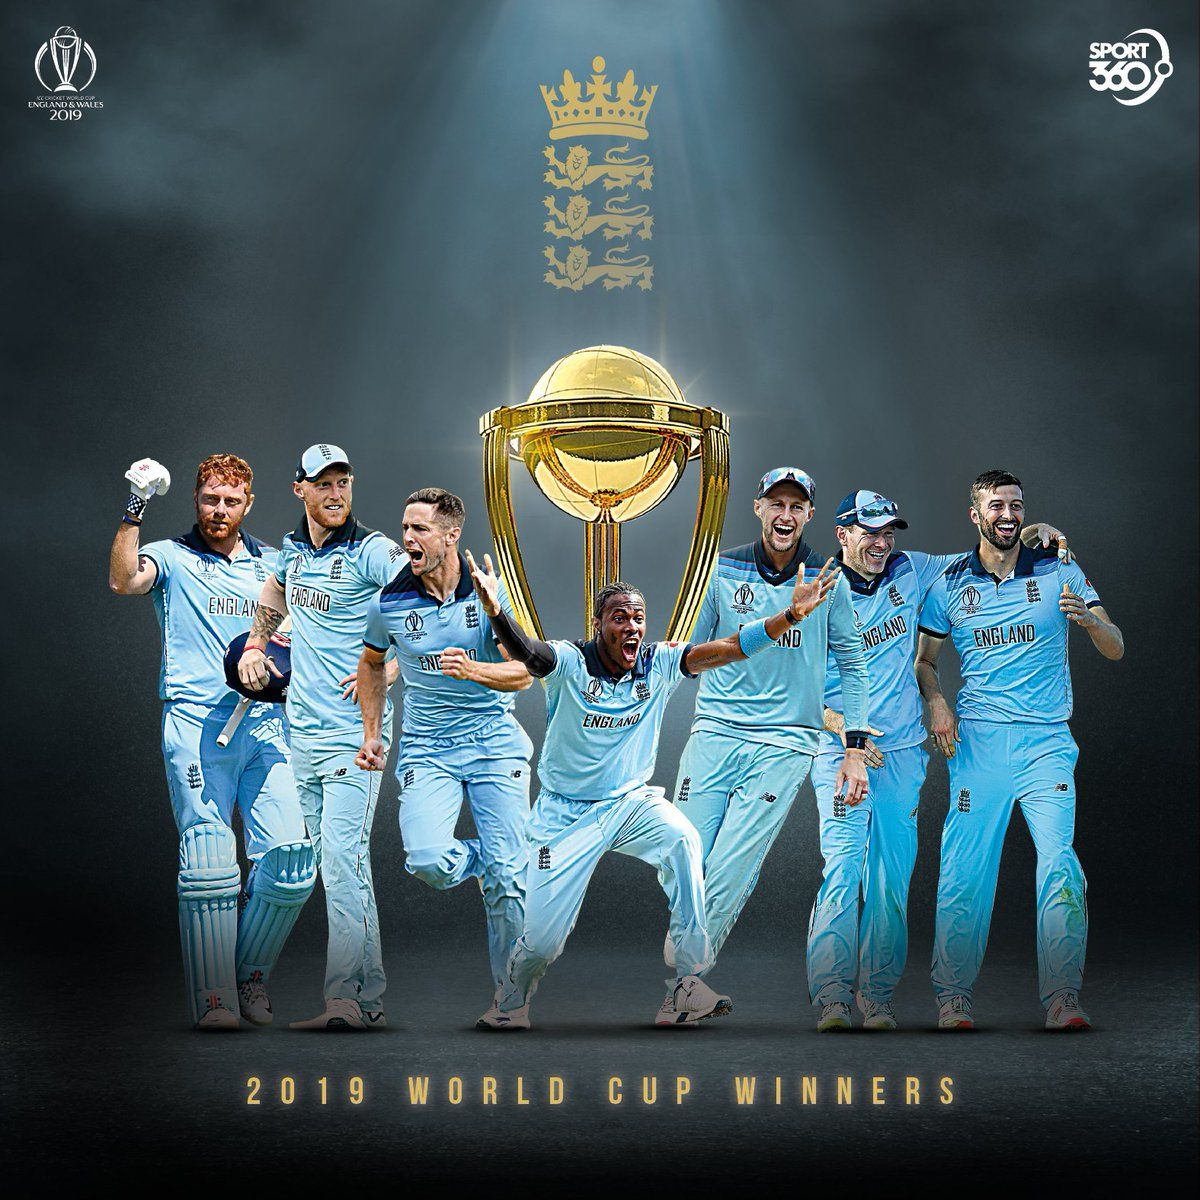 Pin By Fawad Zafar On England Cricket World Champions Cricket Wallpapers England Cricket Team Cricket Teams